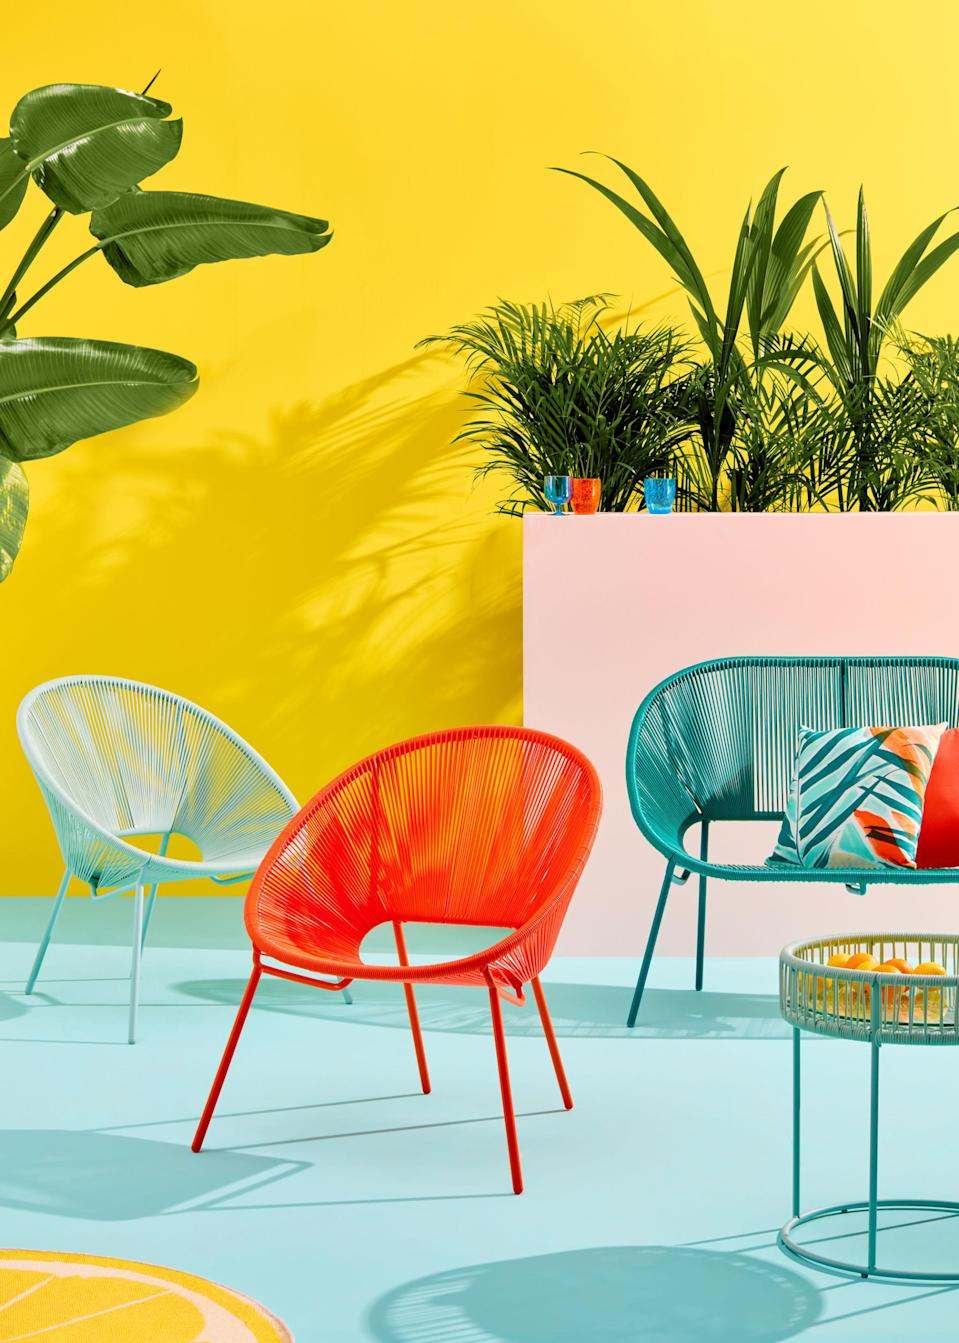 """<p>""""Applying muted tones like grey to your woven furniture is increasingly popular, adding an element of sophistication to your outdoor living area,"""" say the team at <a rel=""""nofollow noopener"""" href=""""https://www.johnlewis.com/"""" target=""""_blank"""" data-ylk=""""slk:John Lewis"""" class=""""link rapid-noclick-resp"""">John Lewis</a>. """"However, as well as the popularity of natural colours and finishes, more of us are becoming braver in our outdoor furniture choices – looking to inject pops of vibrant colour into our outdoor spaces using contemporary furniture designs and cutting-edge textile design.""""</p><p><strong><em>BUY NOW: <a rel=""""nofollow noopener"""" href=""""https://www.johnlewis.com/brand/house-by-john-lewis/outdoor/_/N-1z14045Z1z0qrok"""" target=""""_blank"""" data-ylk=""""slk:House by John Lewis collection, John Lewis"""" class=""""link rapid-noclick-resp"""">House by John Lewis collection, John Lewis</a></em></strong></p>"""